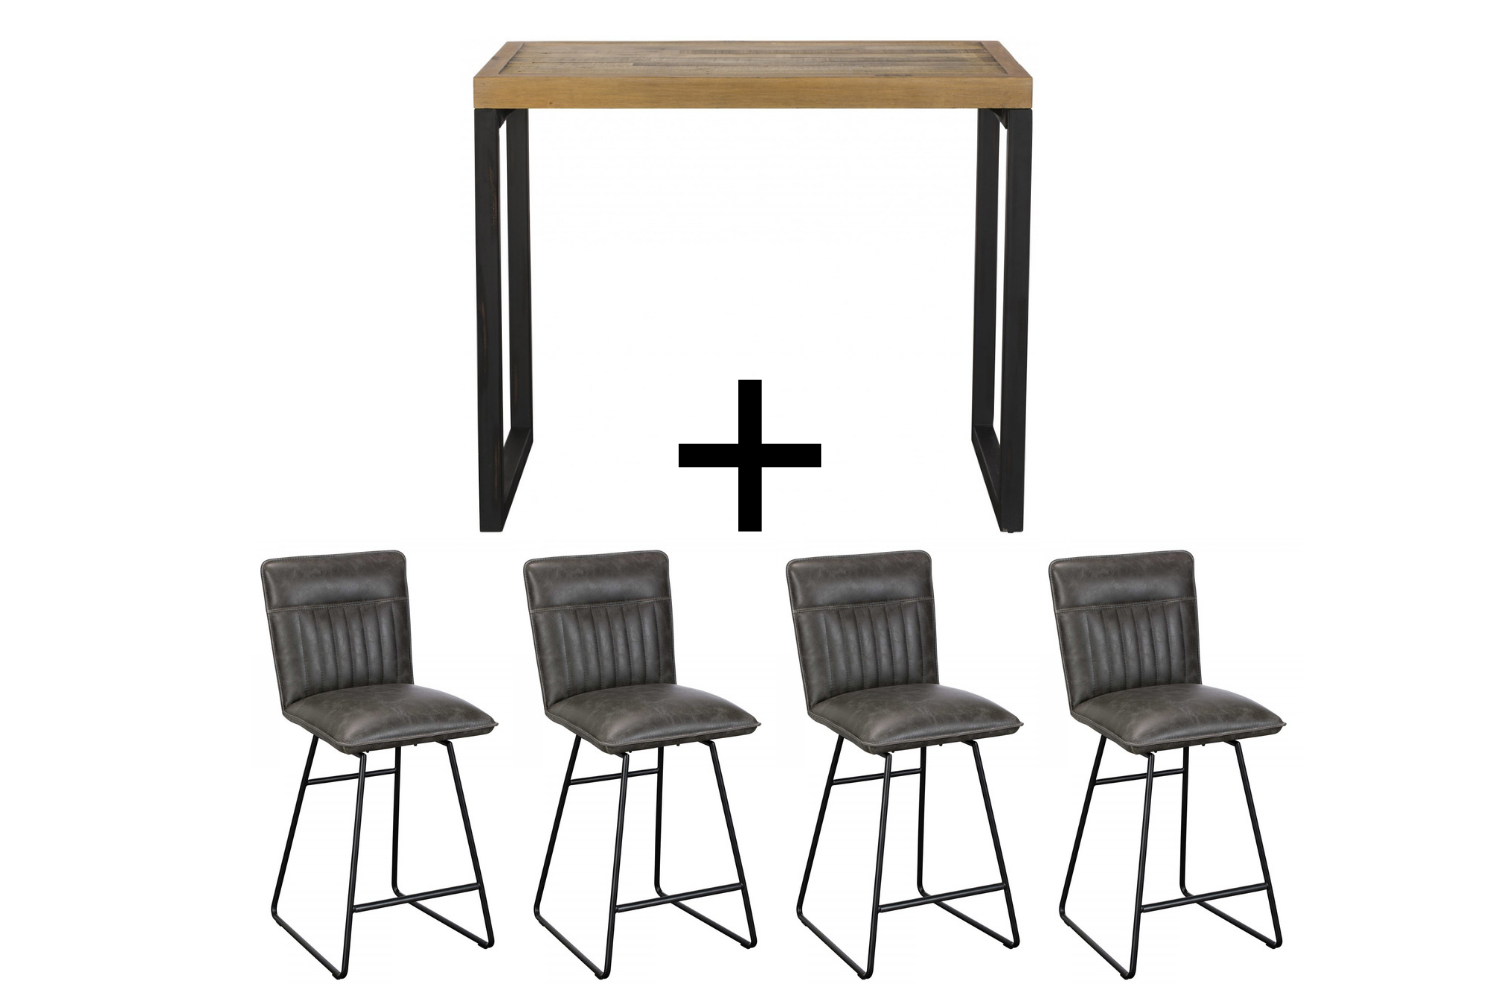 Ford Bar Table & 4 Grey Cooper Bar stools - Bundle Deal